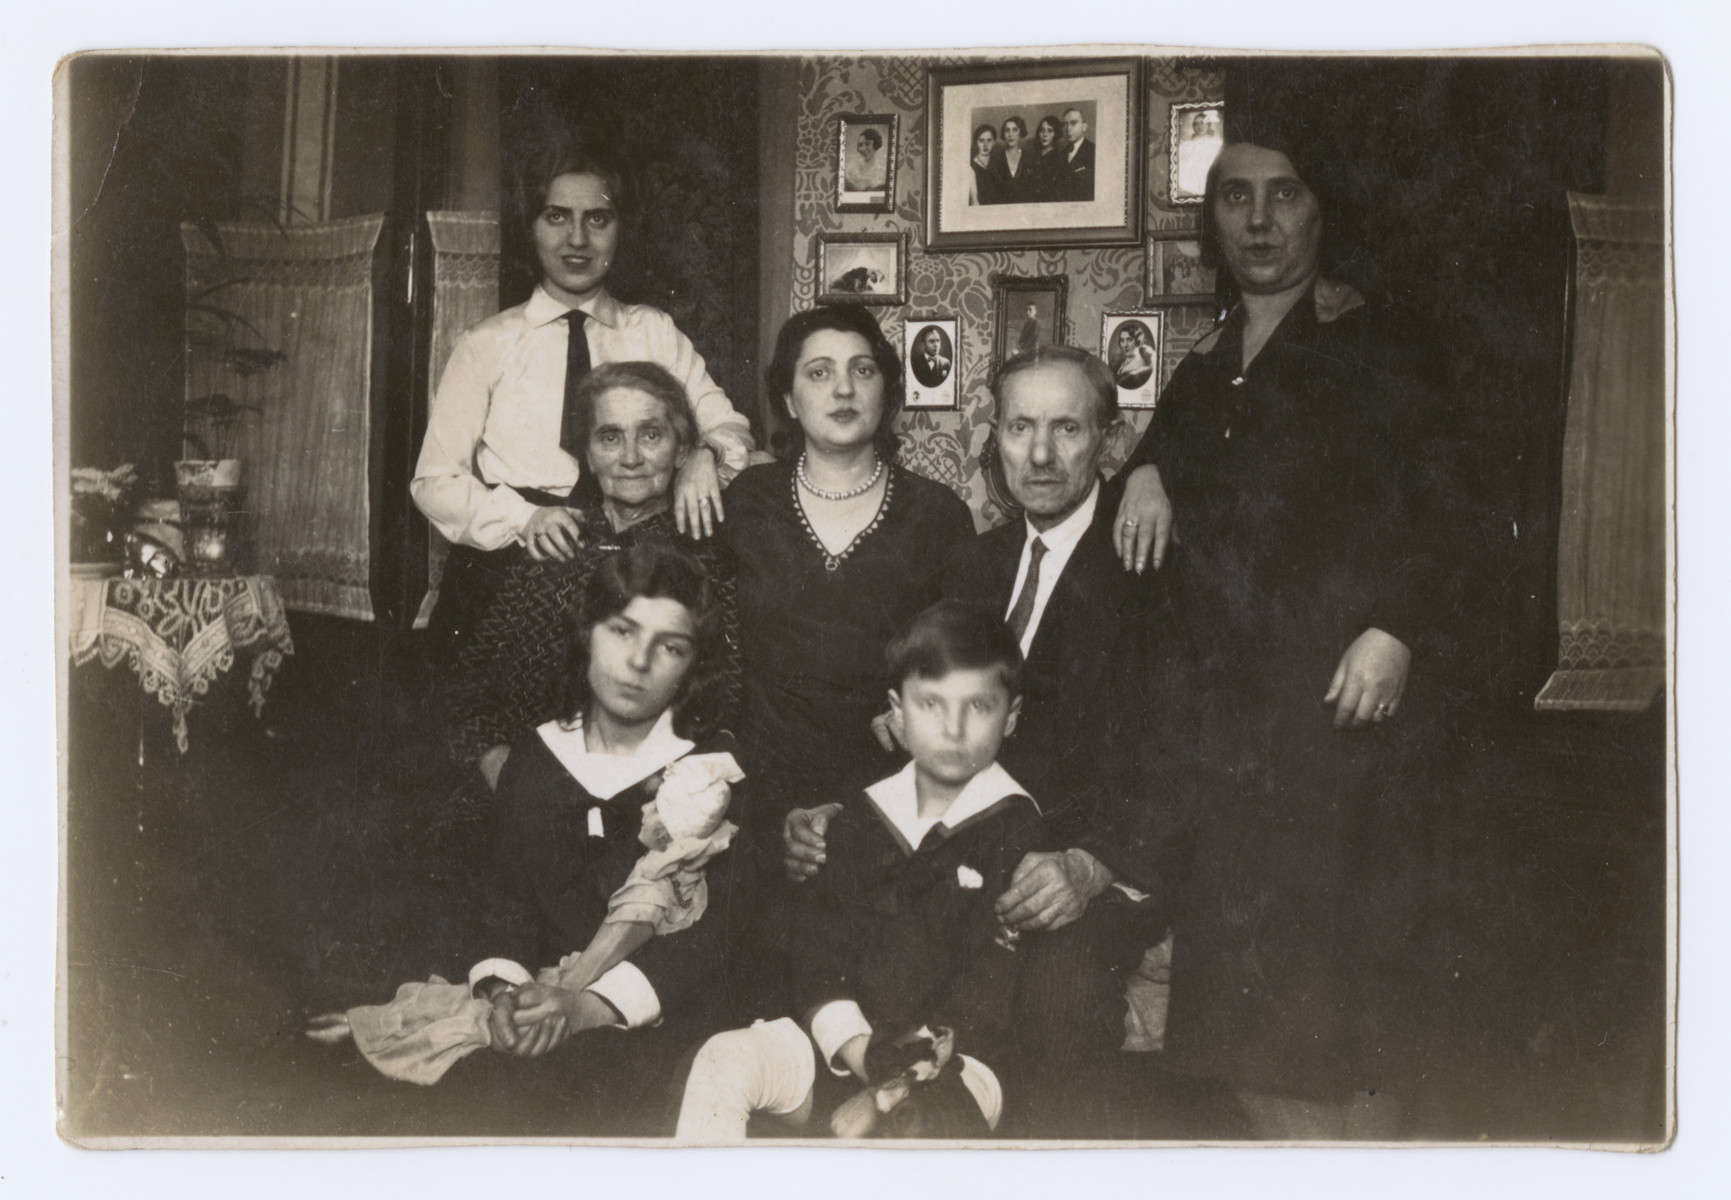 The extended Schwarz family poses for a group portrait in their home.    Marta Koranyi is at the bottom left; her brother Erwin is at the bottom right.  Also pictured are her parents, Sigmond and Sara (nee Schwarz) Koranyi ,and grandparents.  her maternal aunt is at the top right.